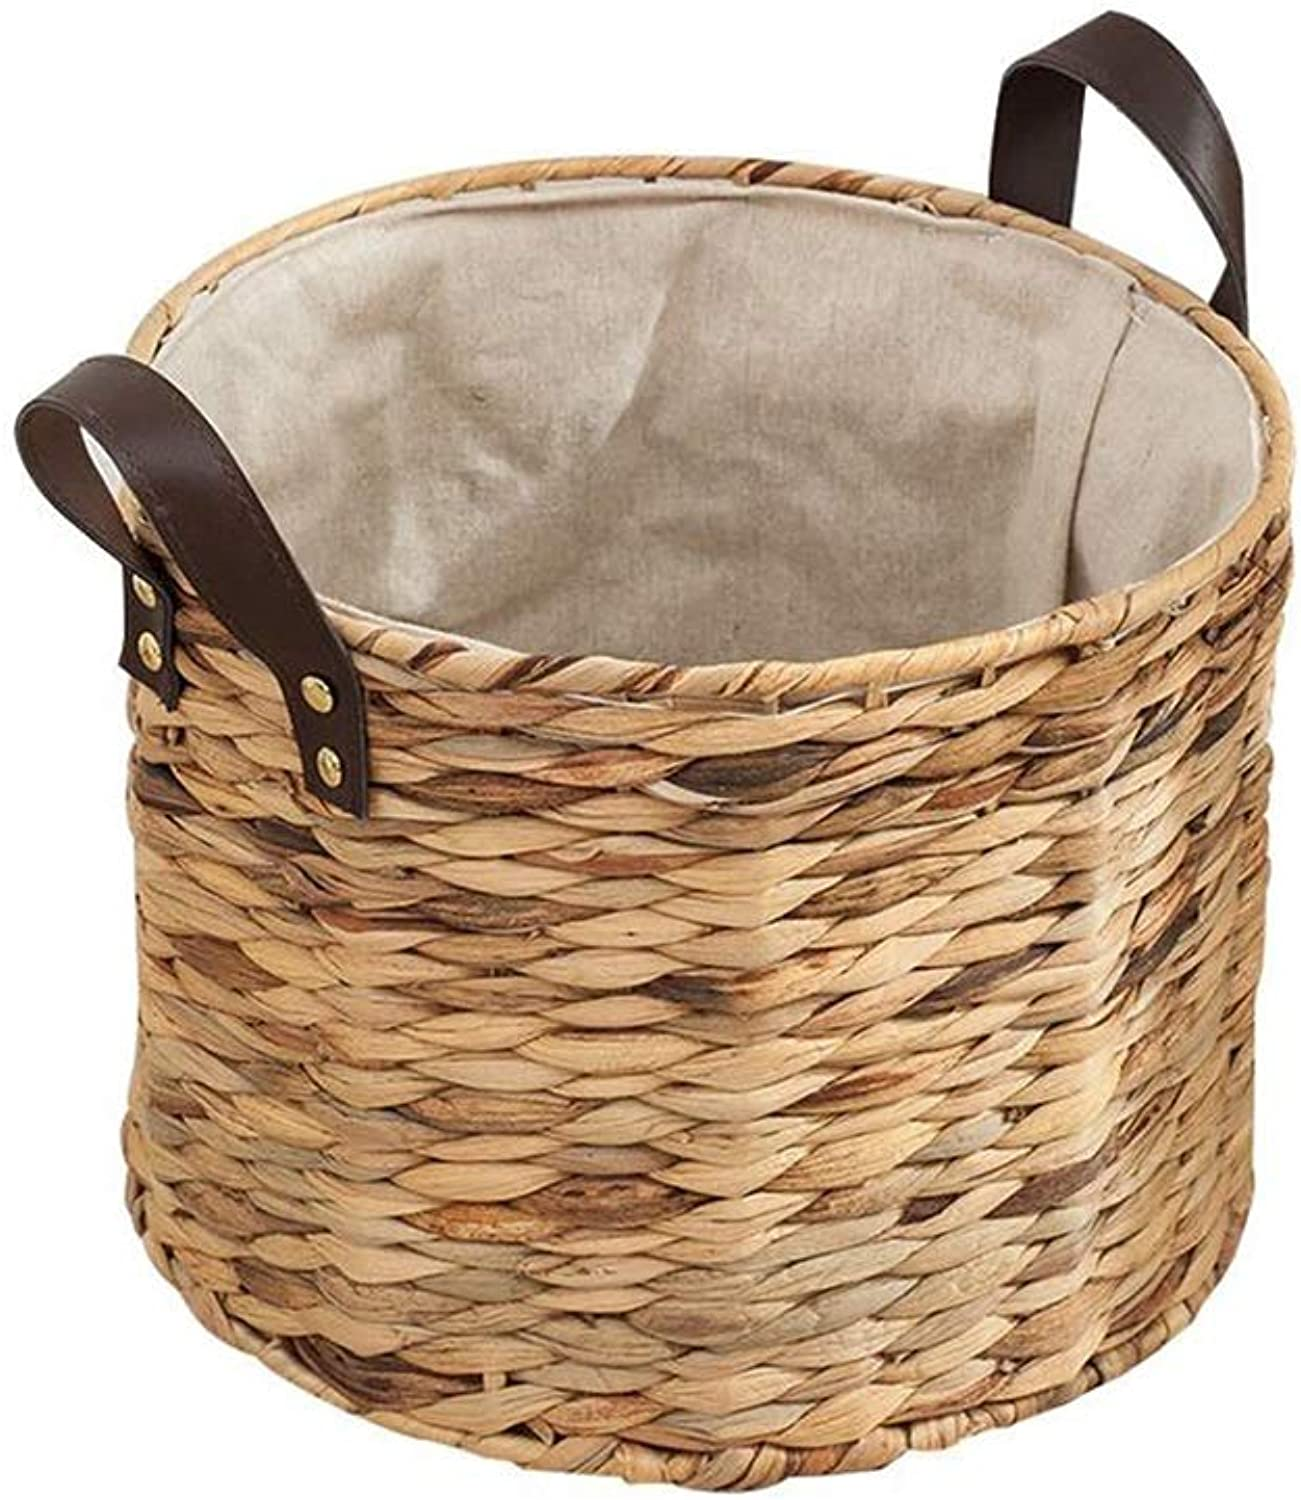 MUMA Storage Baskets Round Rattan Weaving Cotton Lining Anti-Static Breathable Easy to Clean Home Supplies (color   T1, Size   30x23cm)